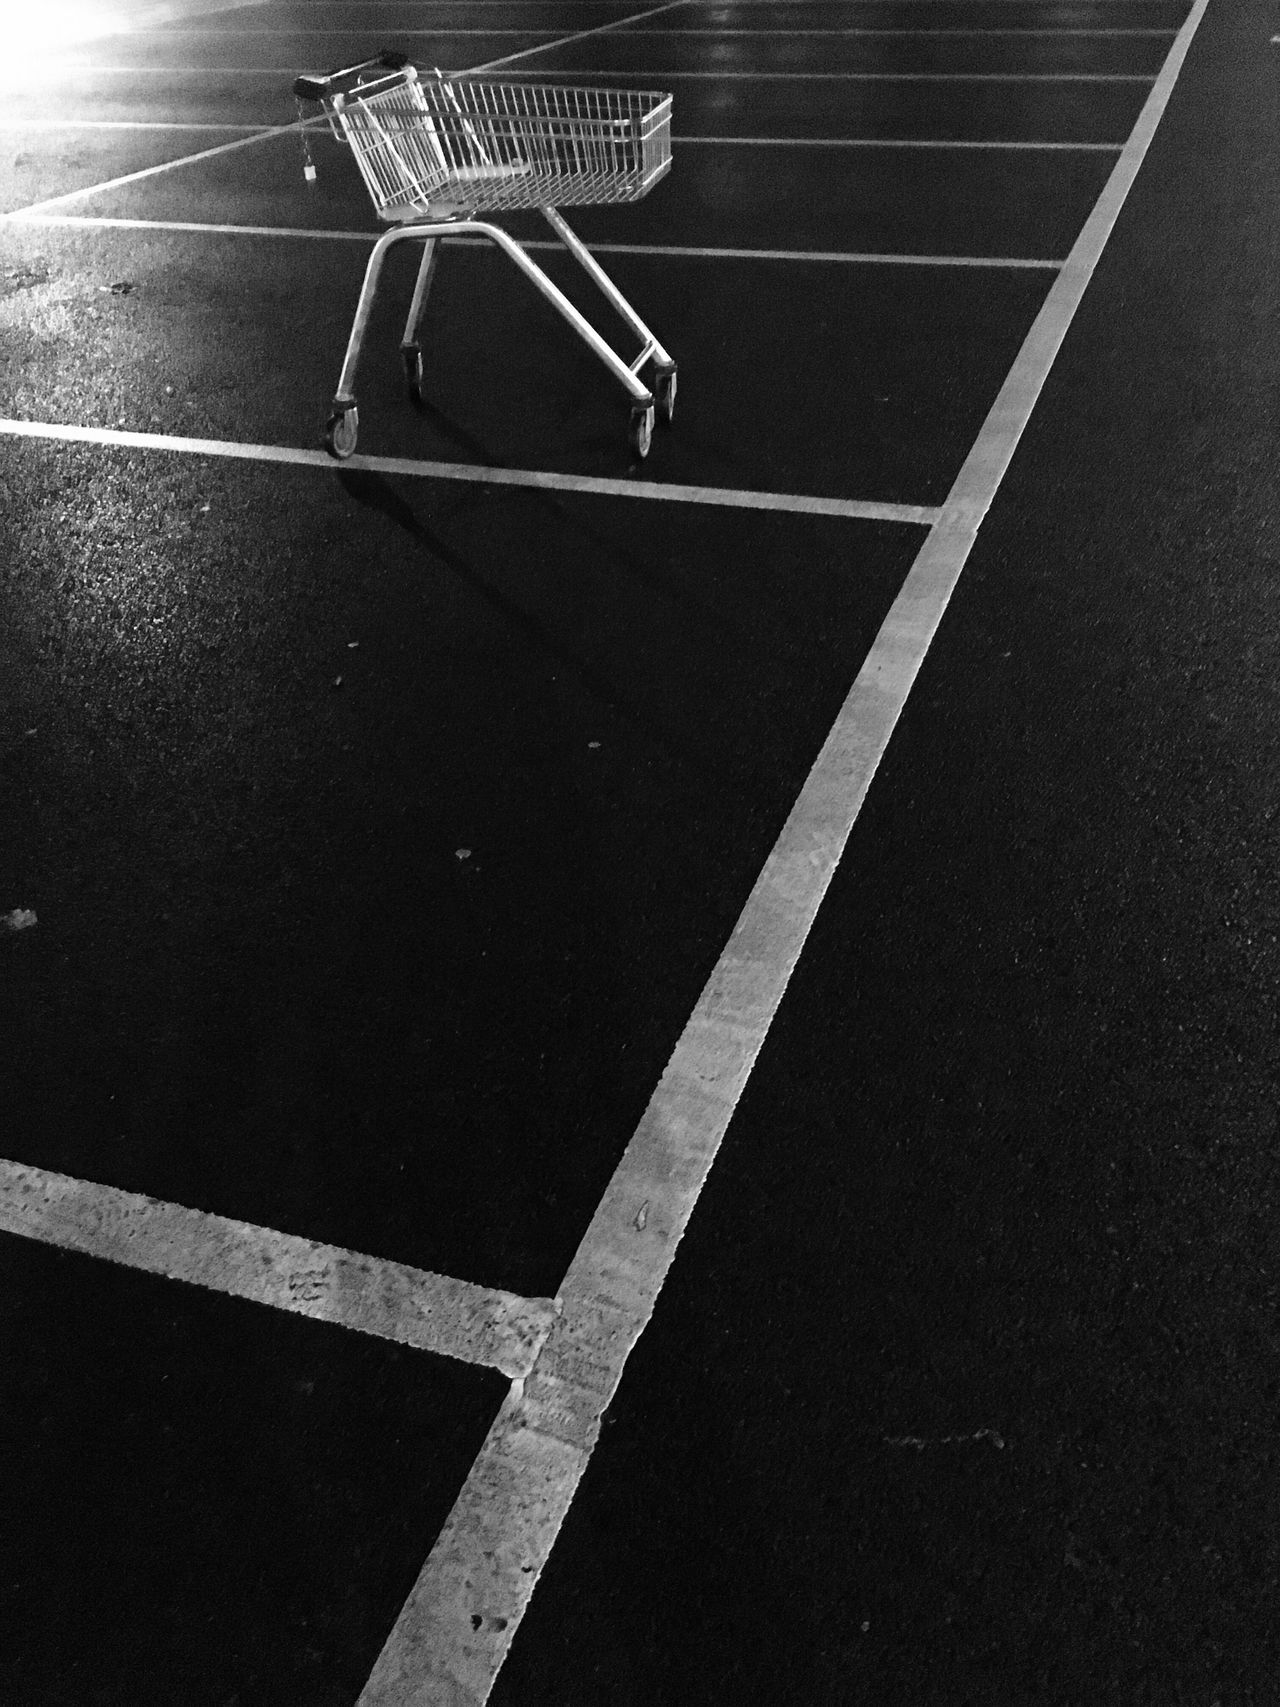 No People Indoors  Night Close-up Lone Trolley Discarded